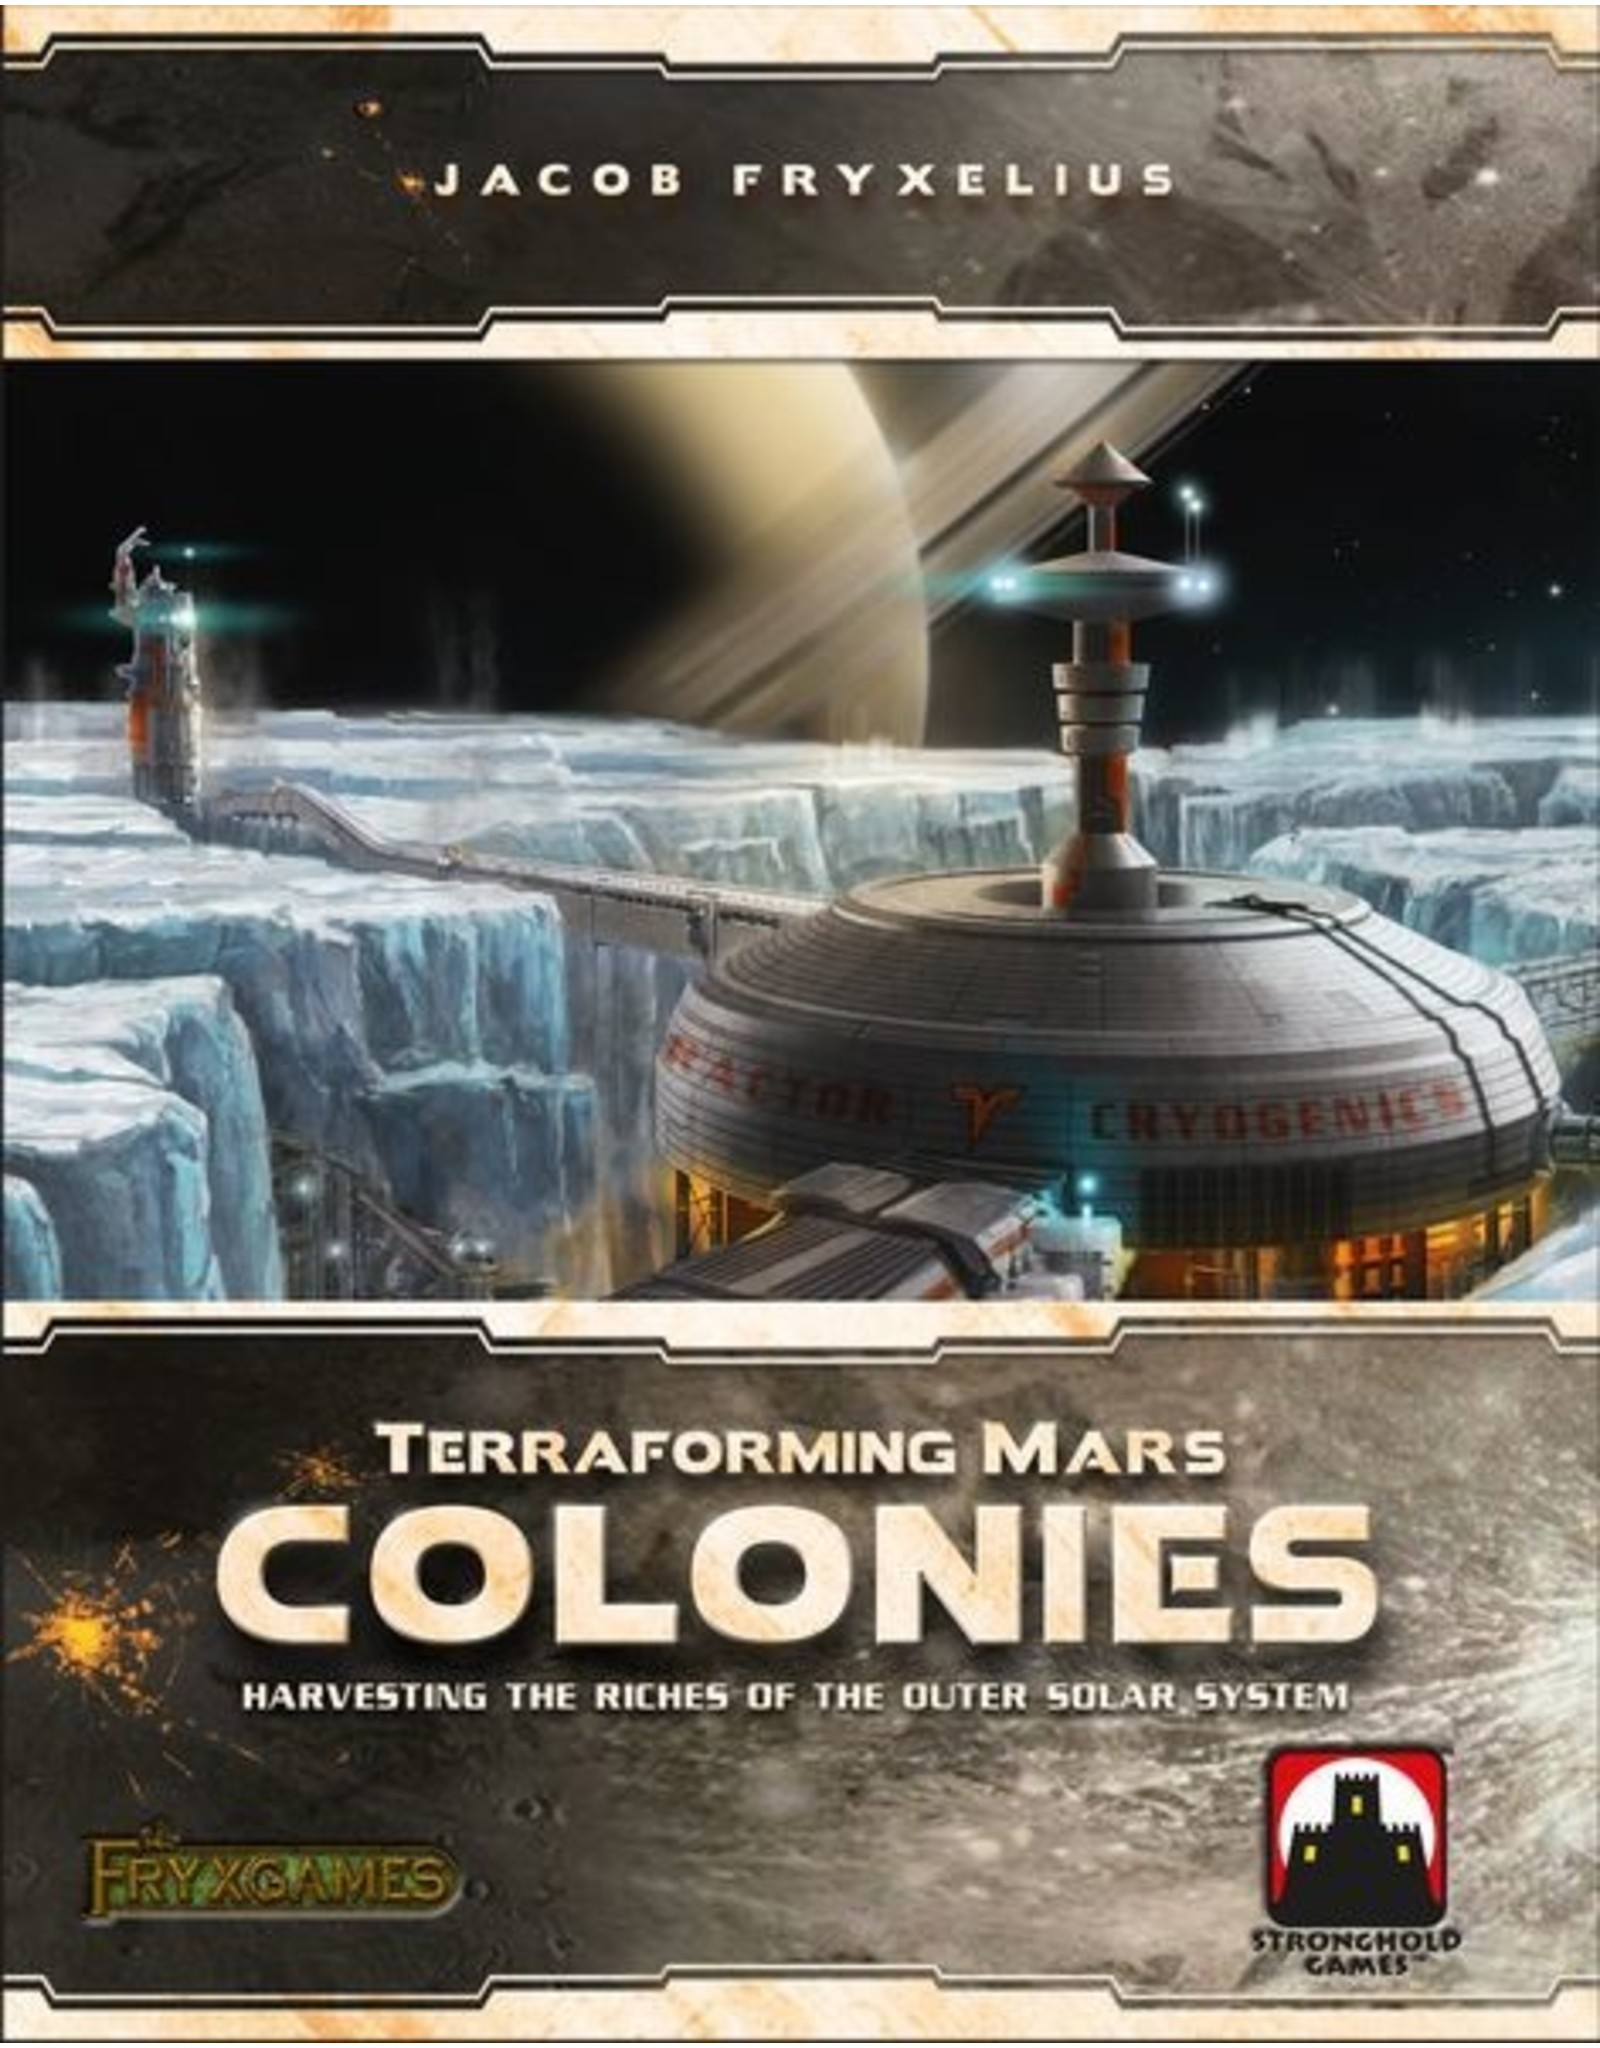 Terraforming Mars: The Colonies